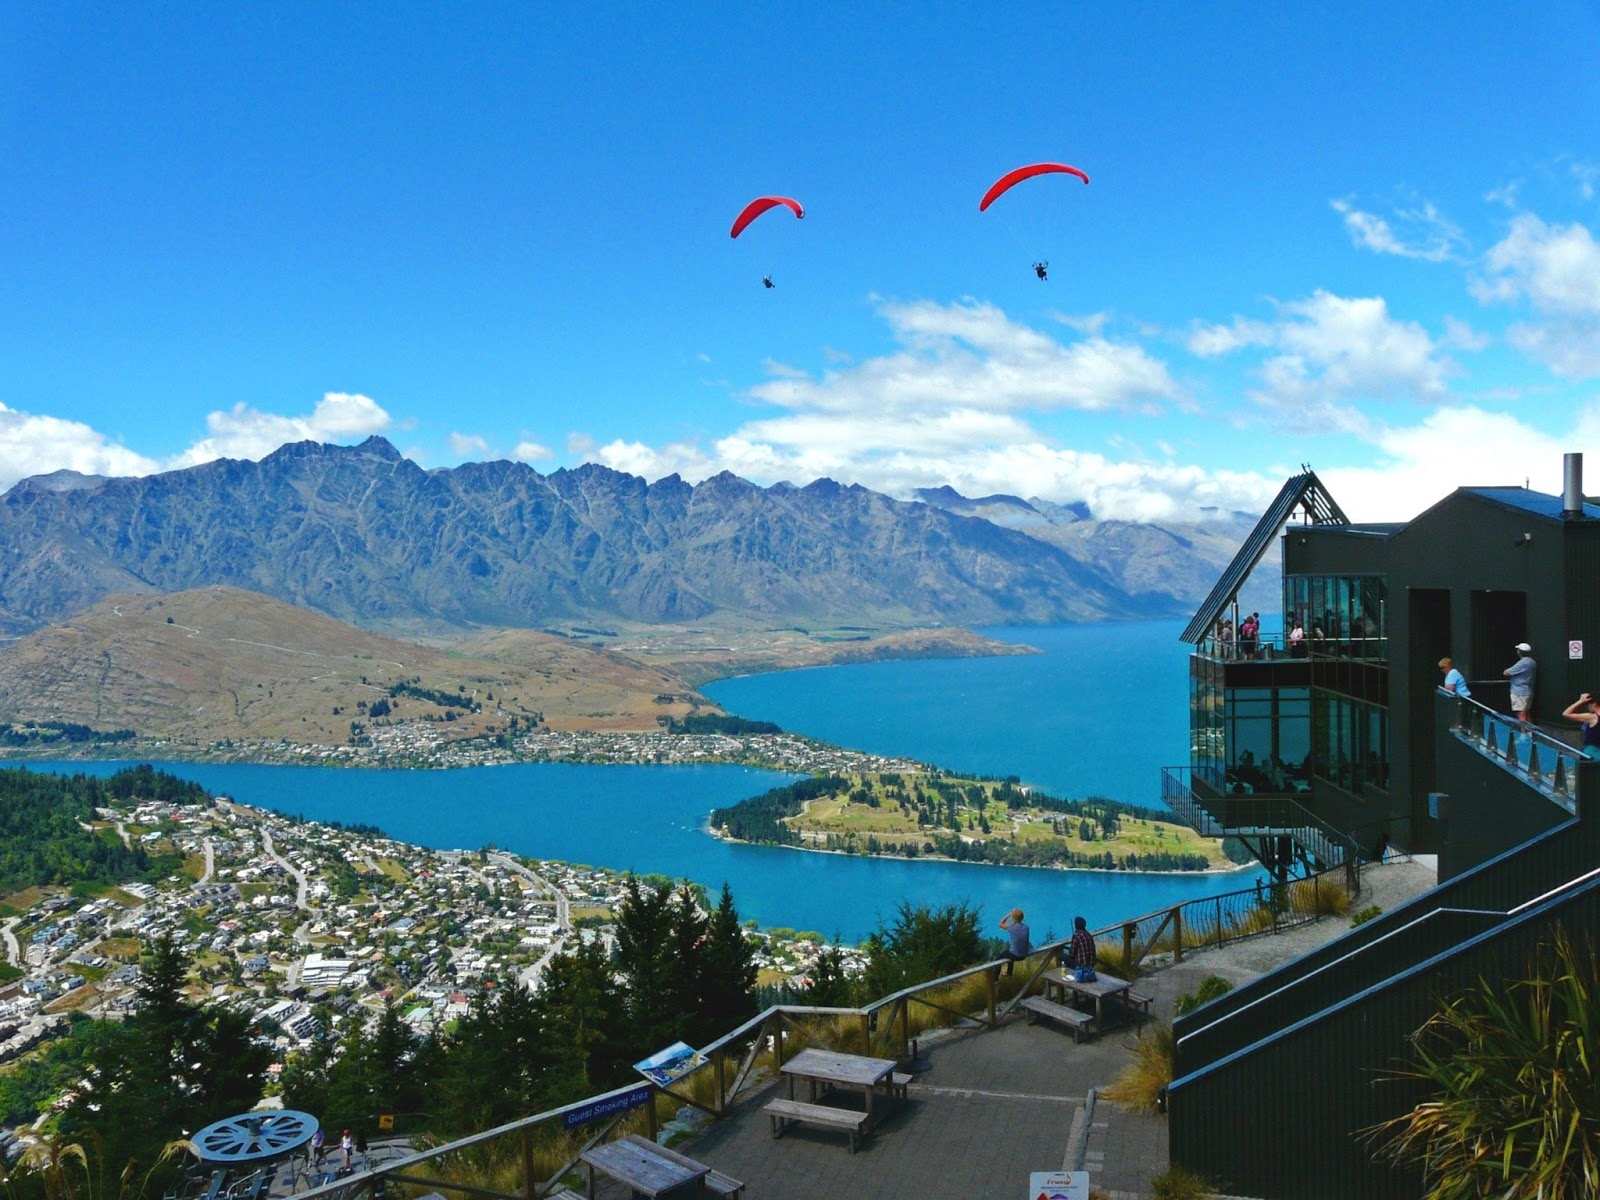 reasons why rotoura is a great tourist destination in new zealand New zealand offers an unlimited selection of quality tourist attractions and activities for a fun destinations about new zealand looking for some great ways.